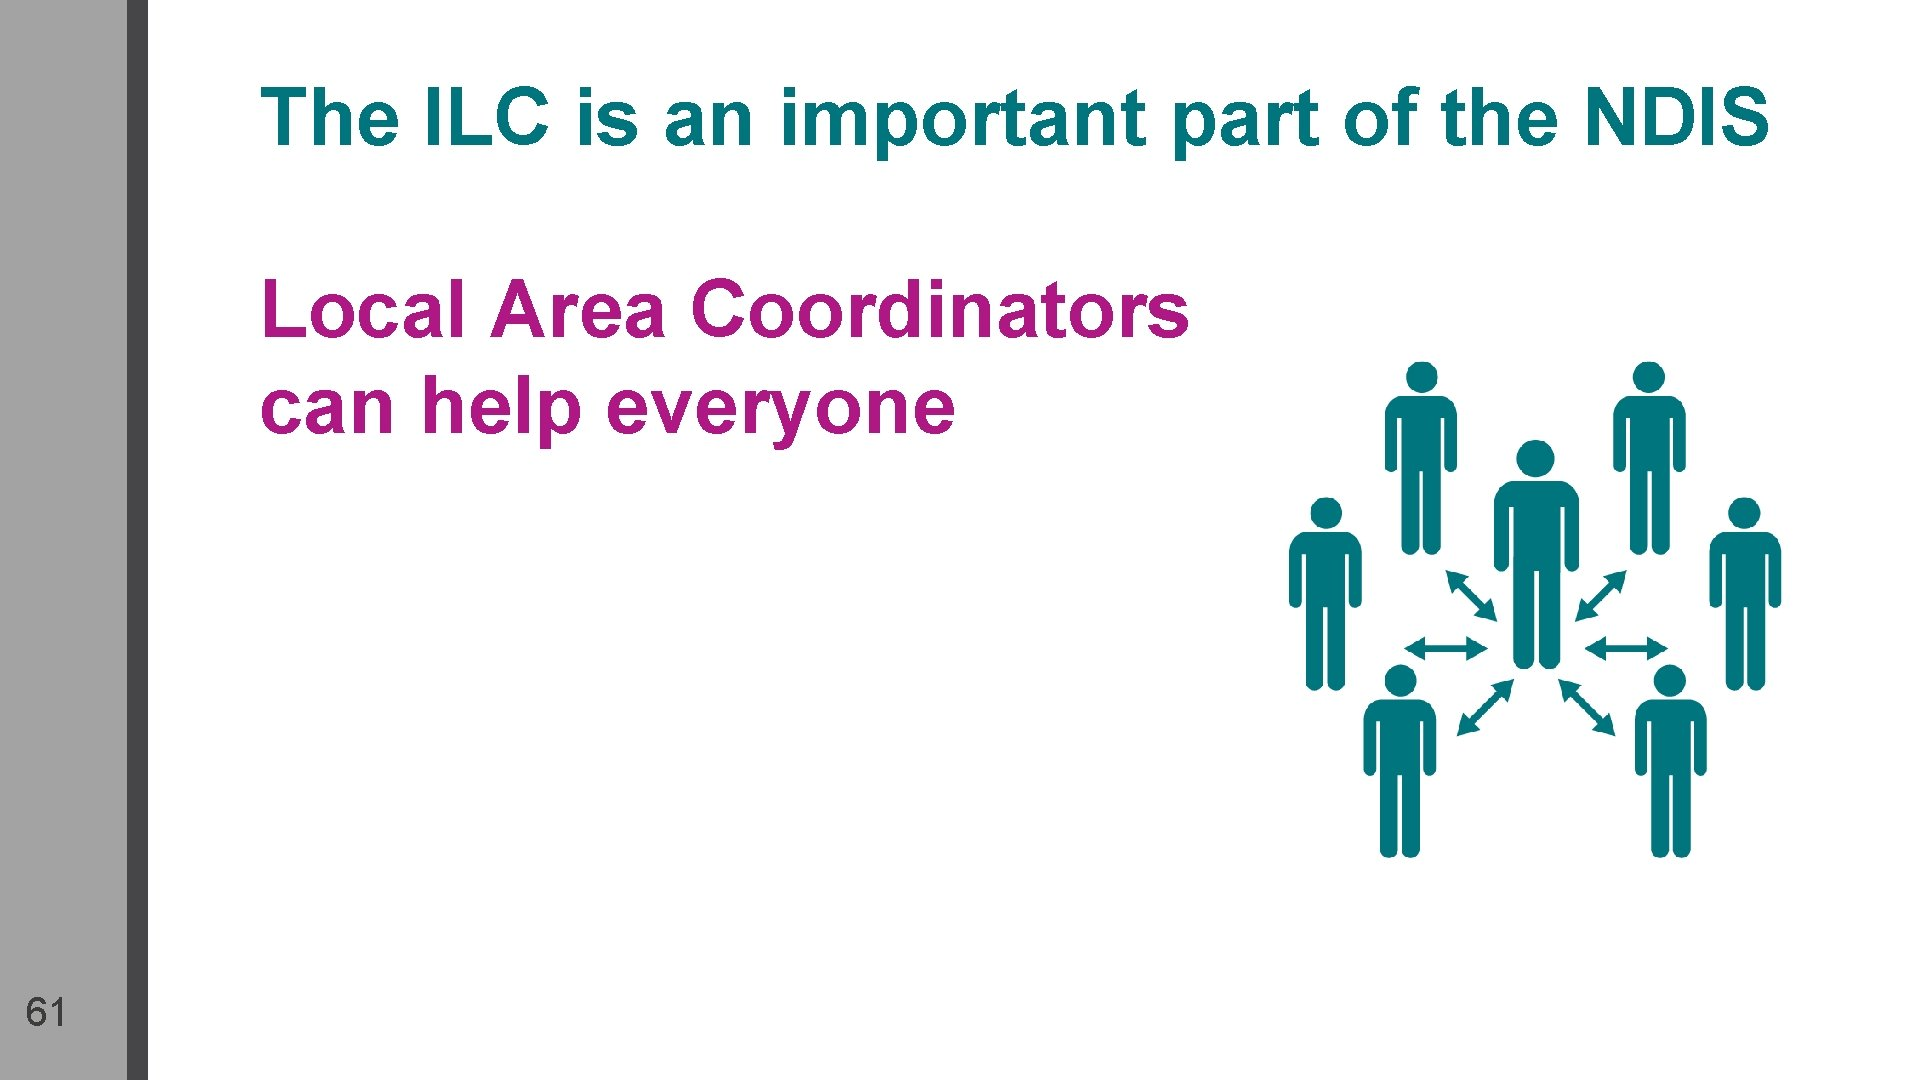 The ILC is an important part of the NDIS Local Area Coordinators can help